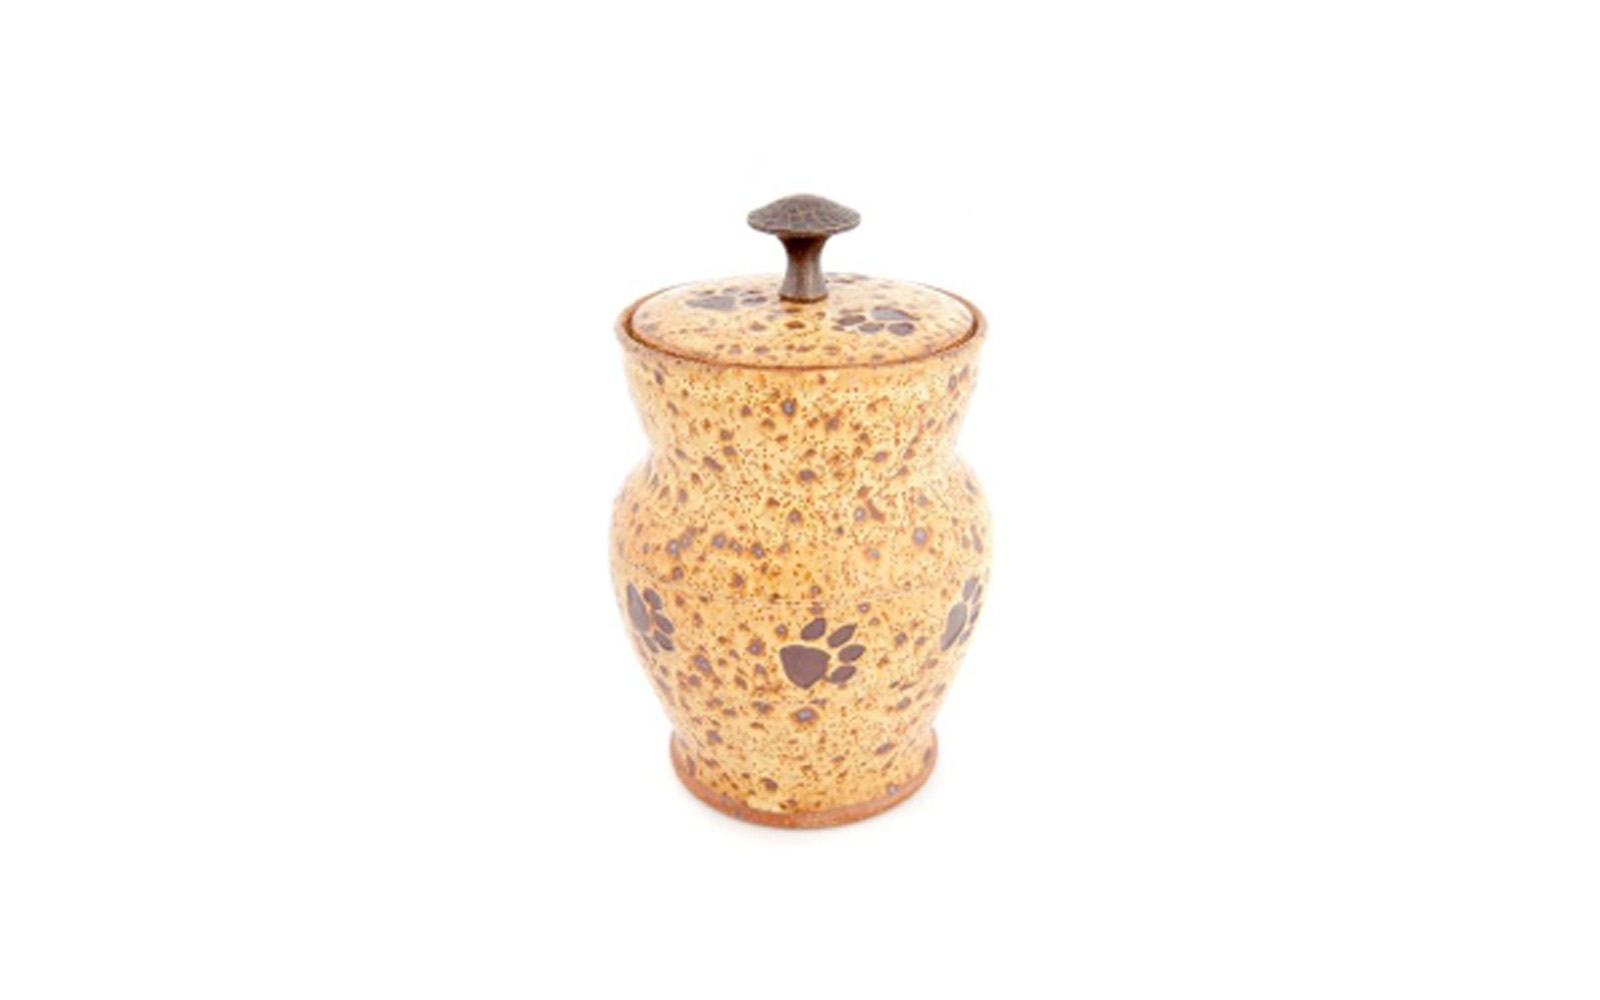 """Spotted Paws Ceramic Pet Urn    This ceramic urn has a Hand Hammered Handle with Brown Paw Prints circling around it. Measuring 4 ½"""" L x 4 ½"""" W x 7 ¼"""" H, 32 Cu. Inches, up to 32 lbs., this urn is truly a wonderful accent piece to any décor. $120    *Please Note: Each piece is uniquely made by its Artist resulting in different colors and weight"""